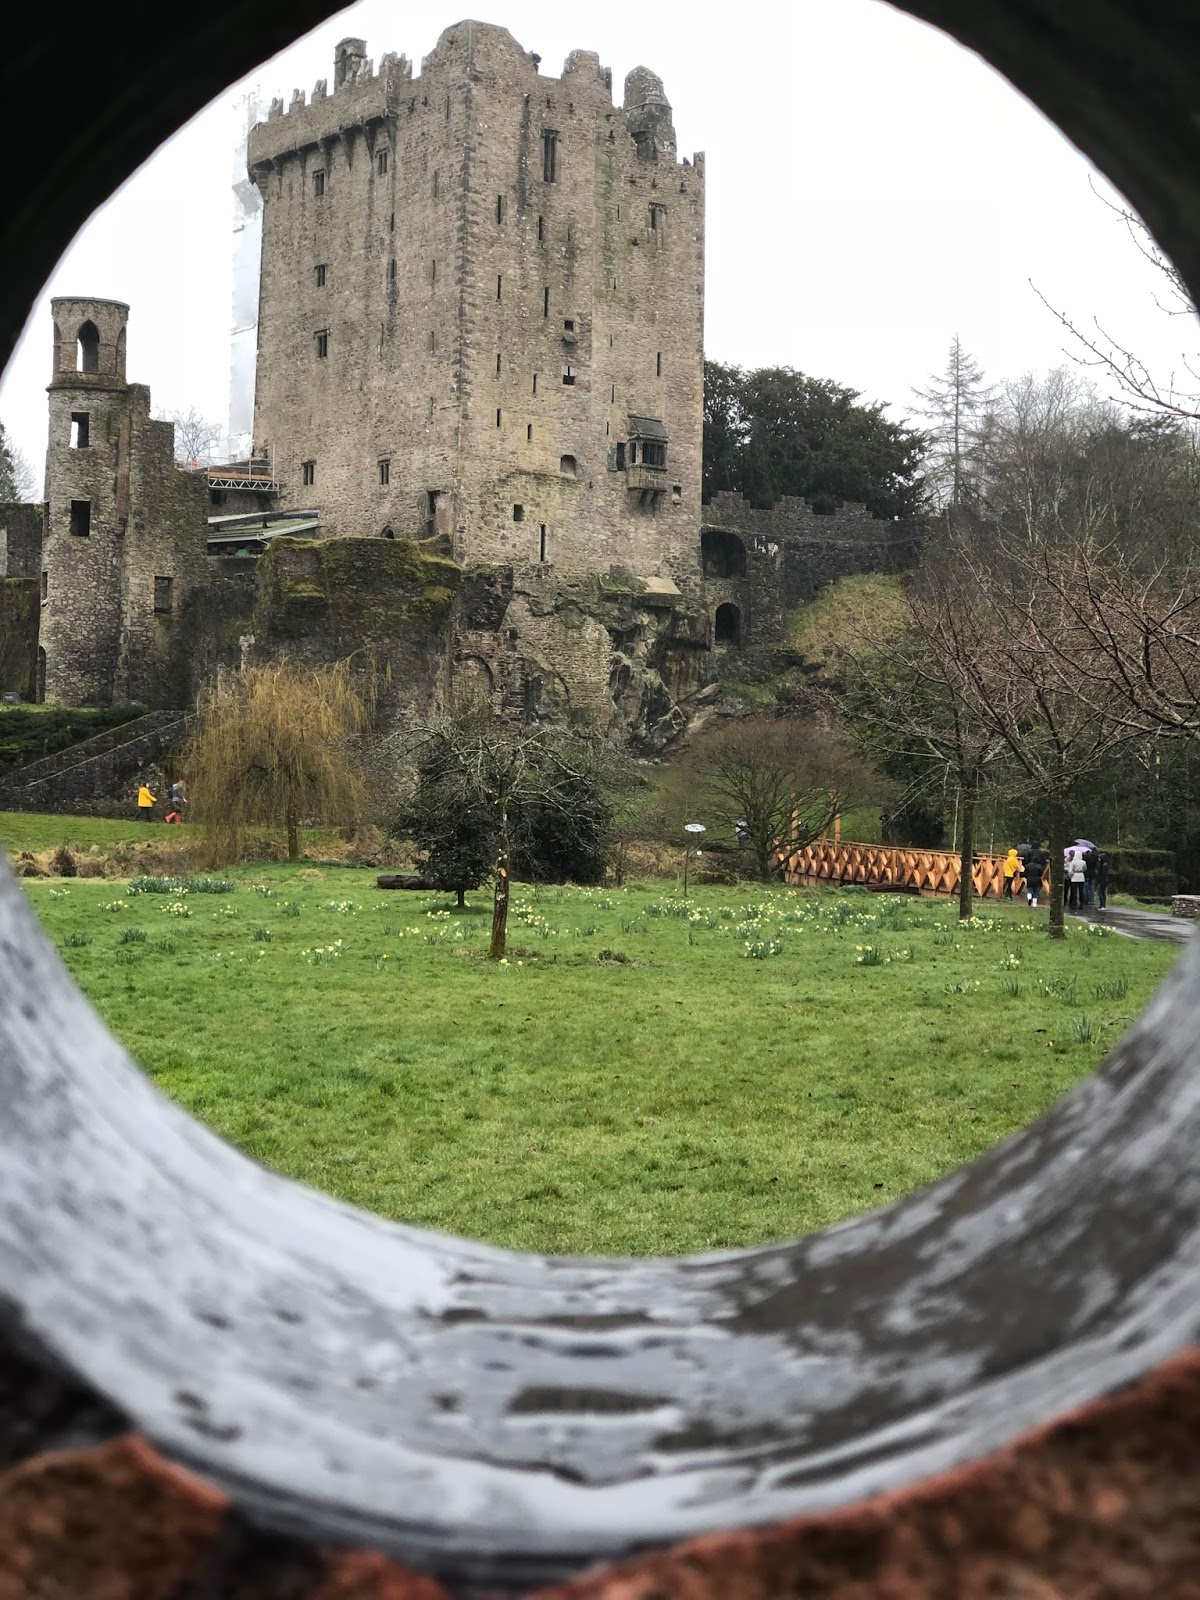 Where to go in Ireland, Ireland Road Trip, Trips to take around Ireland, Blarney Stone